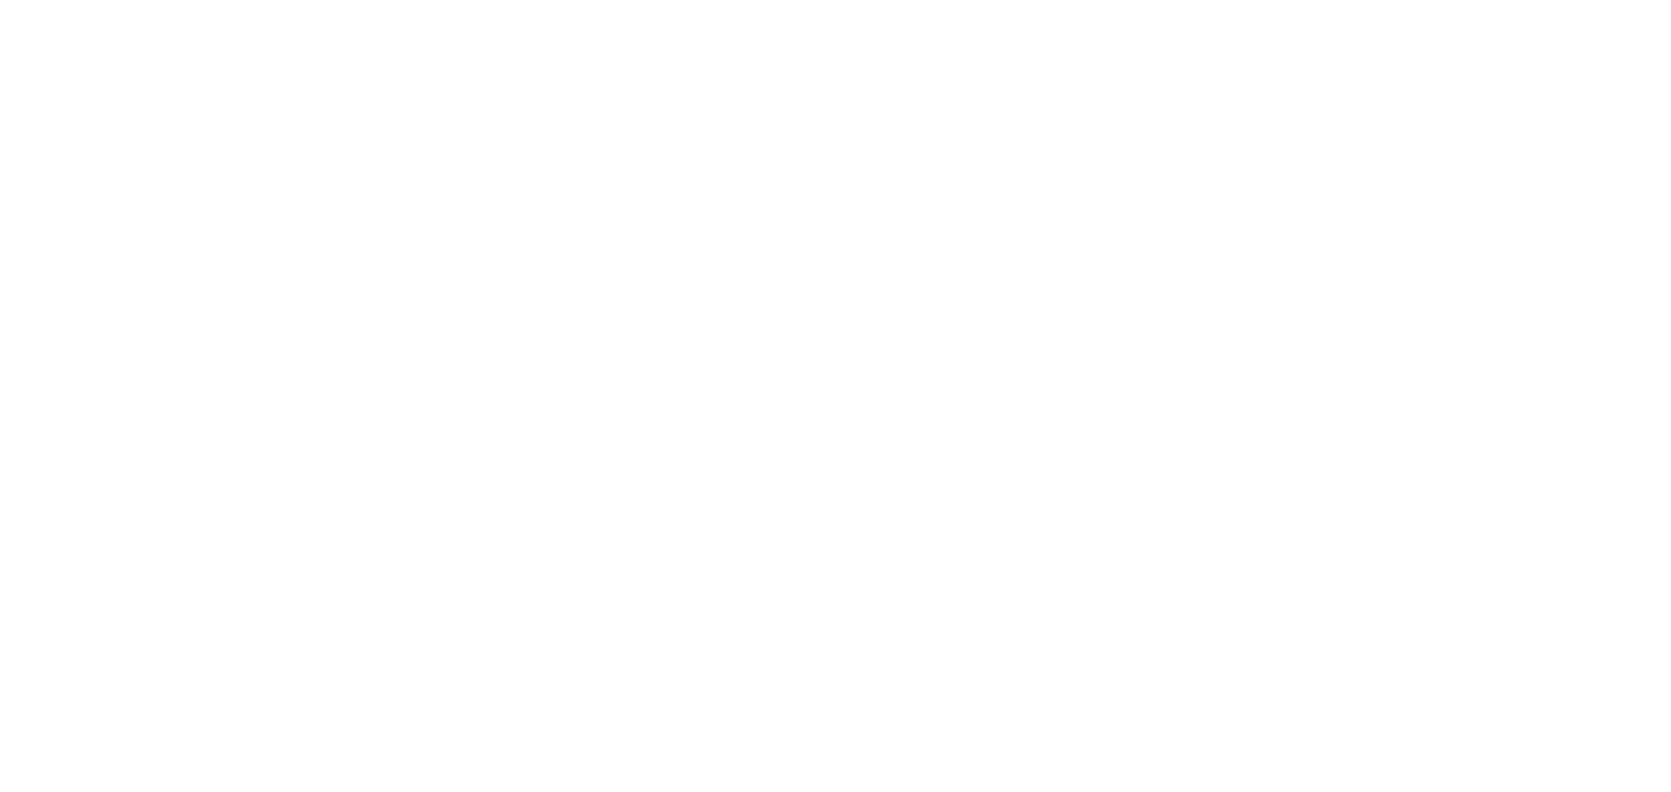 bobcat is a doosan company  doosan is a global leader in construction  equipment, power and water solutions, engines, and engineering, proudly  serving